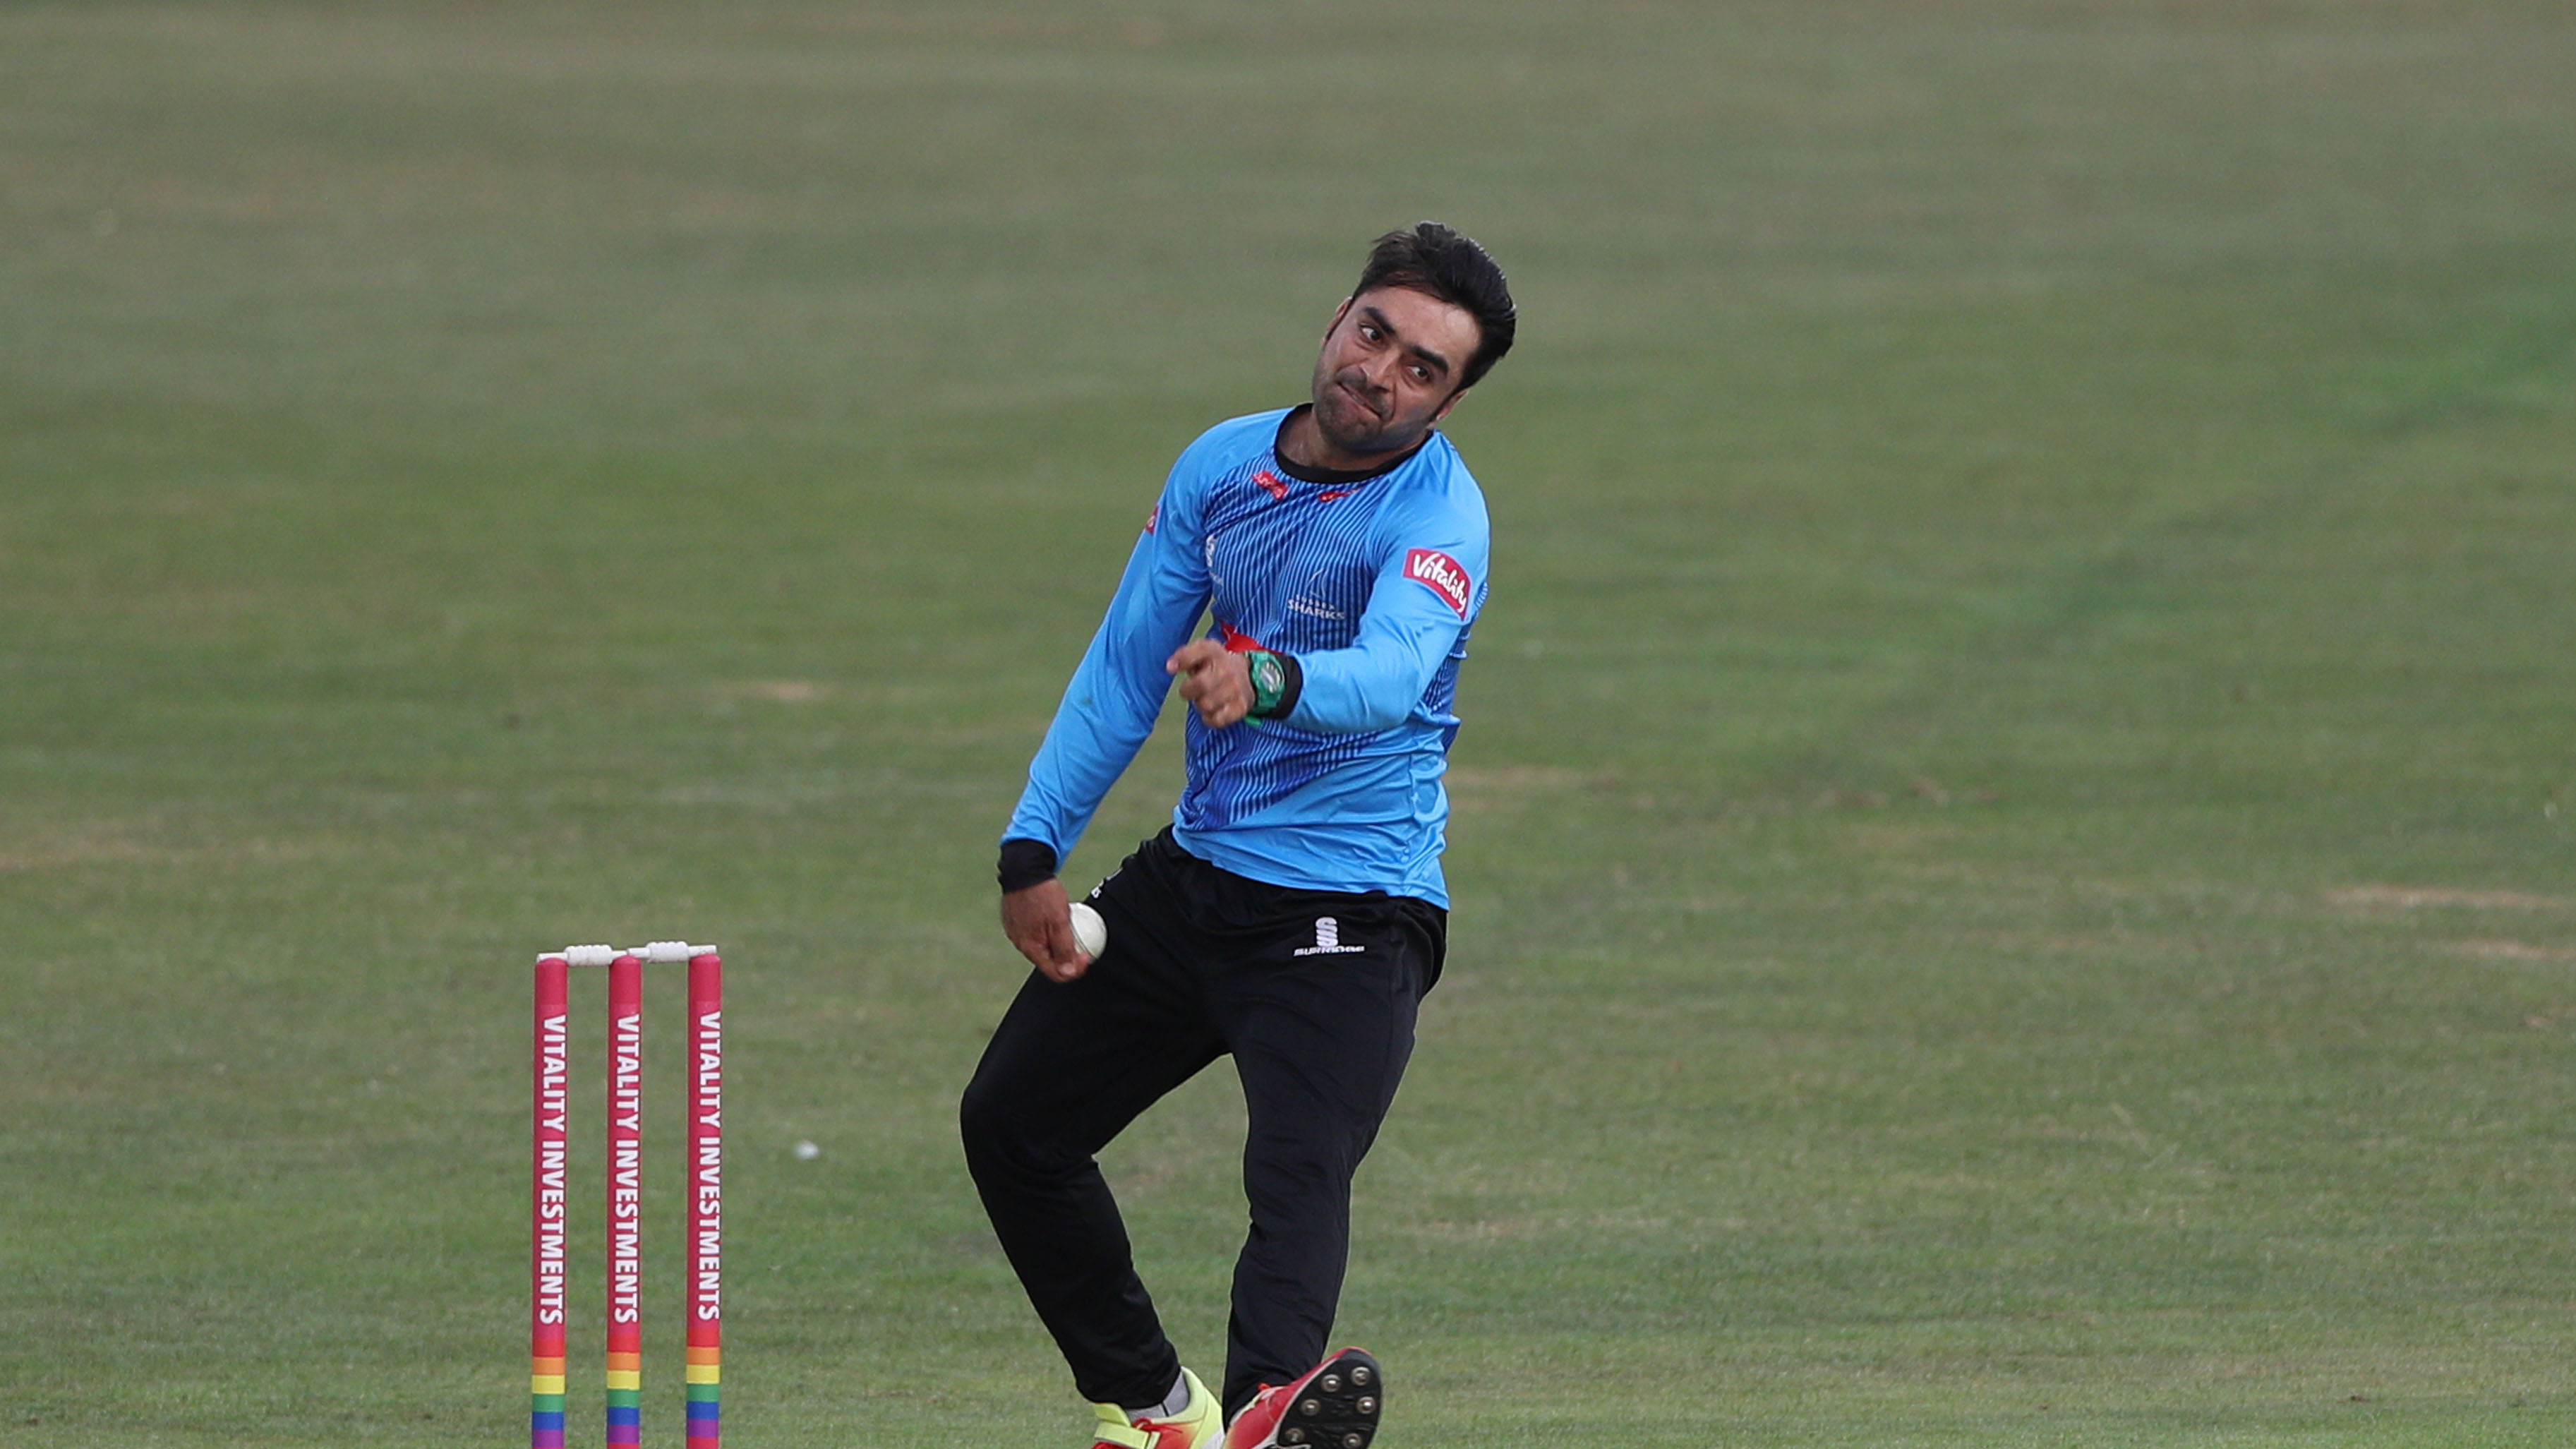 Rashid Khan re-signs contract with Sussex for T20 Blast in 2019